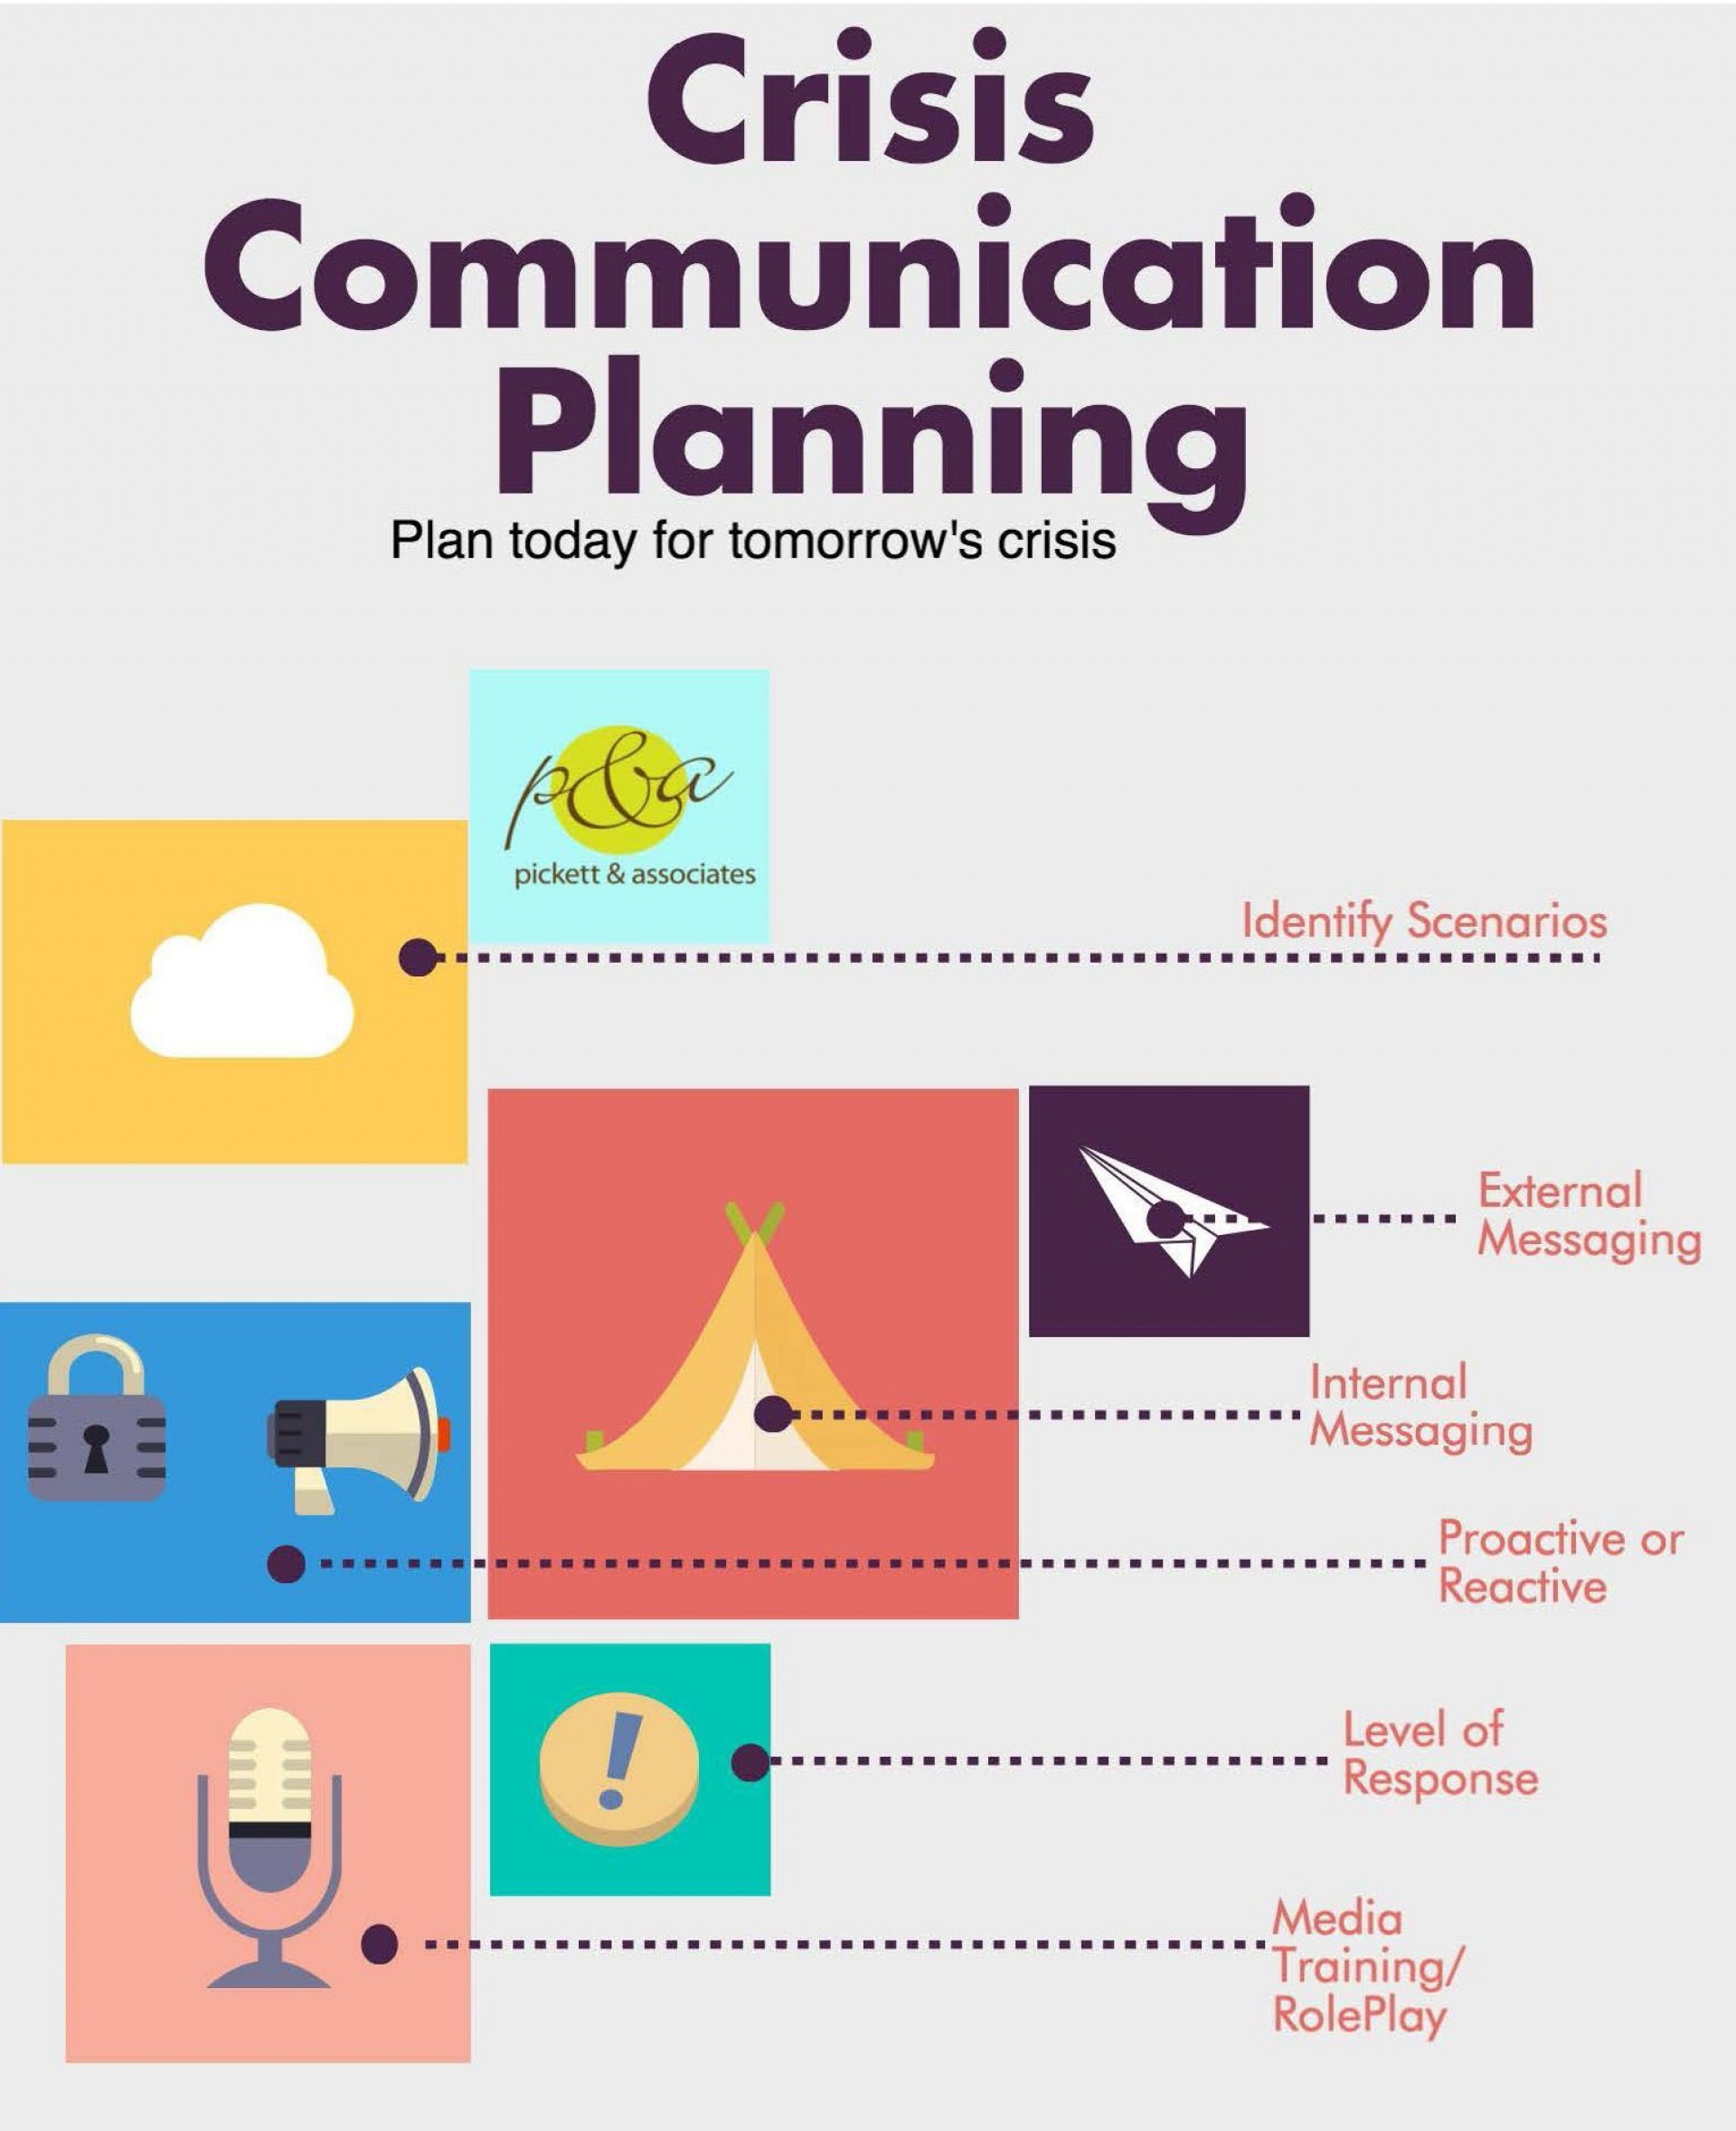 003 Phenomenal Crisi Communication Plan Template High Definition  For Higher Education Nonprofit1920